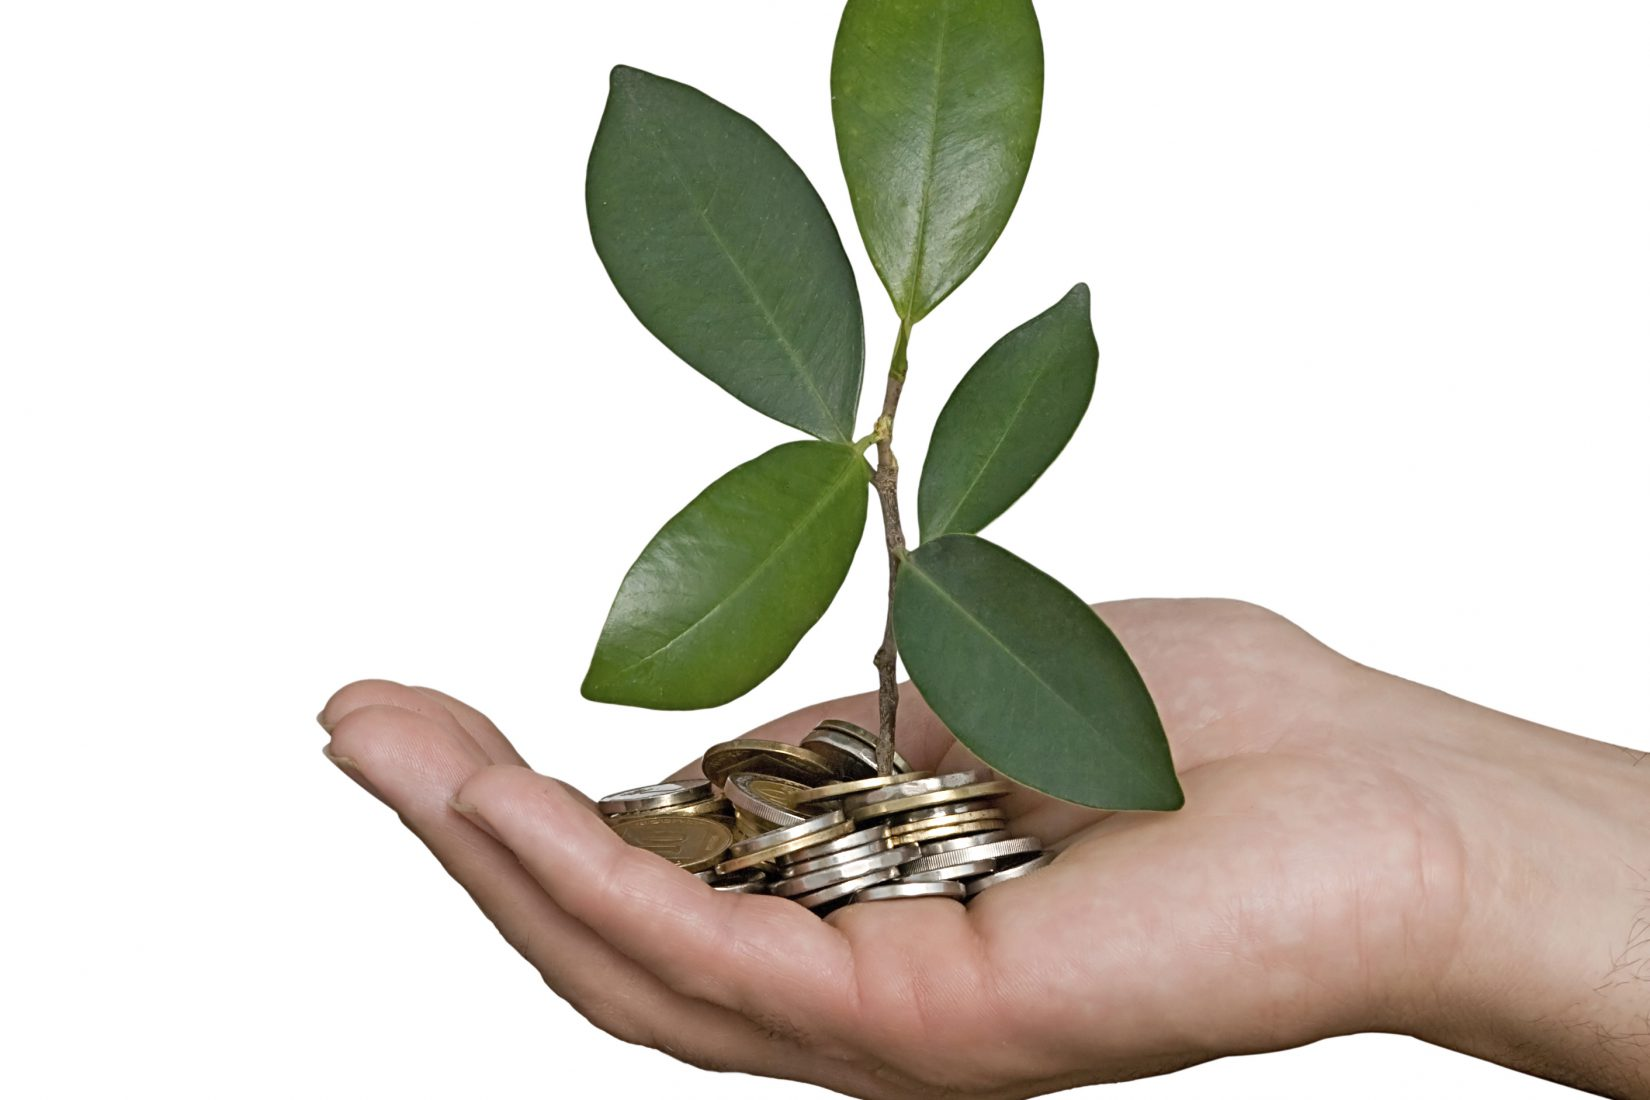 Palm with a plant growng from pile of coins